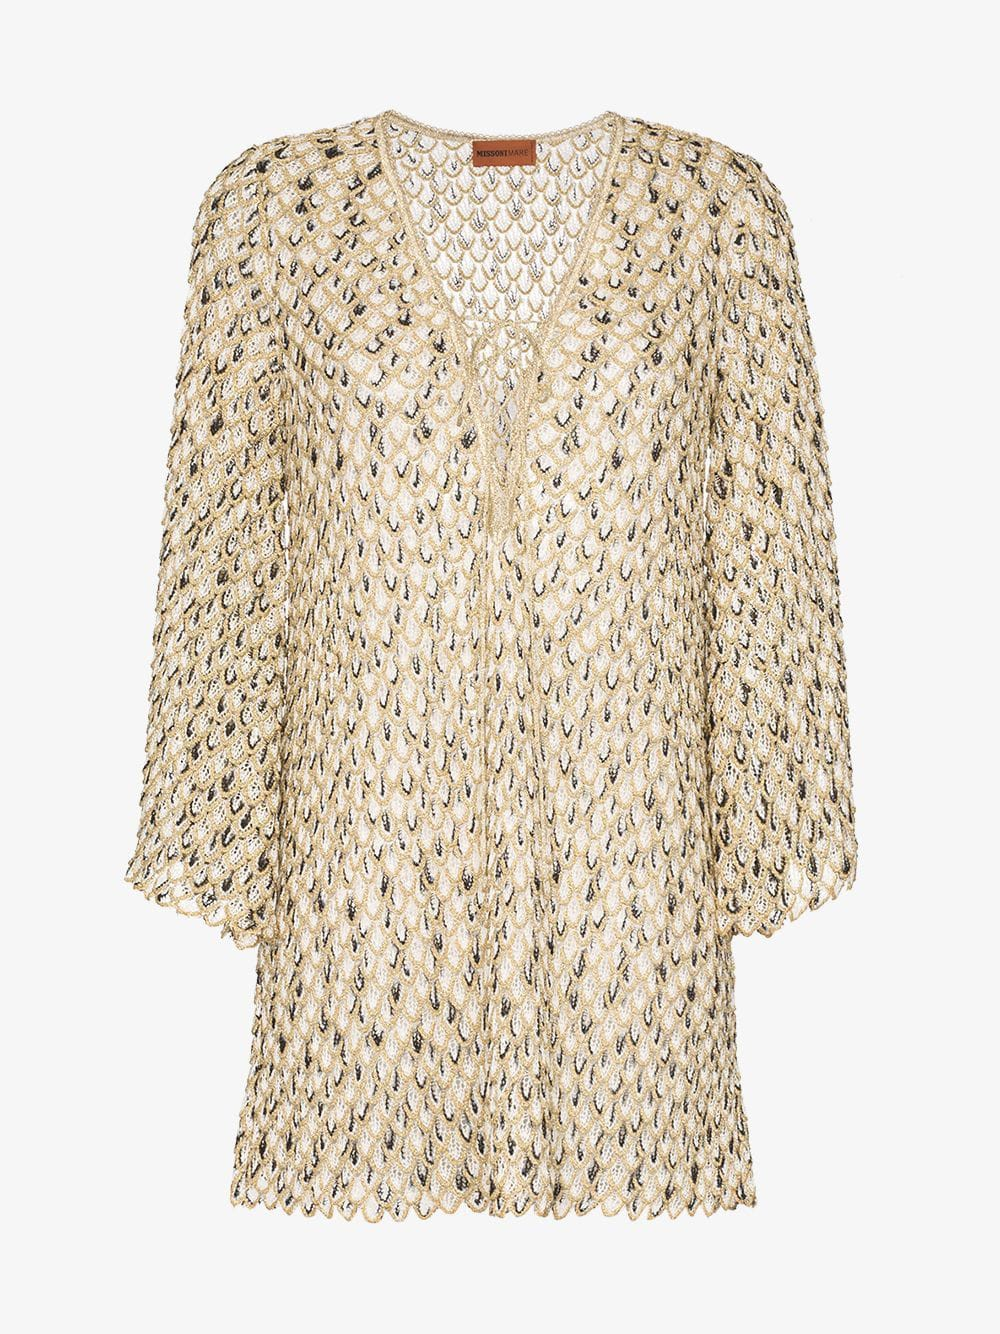 Missoni Mare scale-effect knitted beach dress in metallic